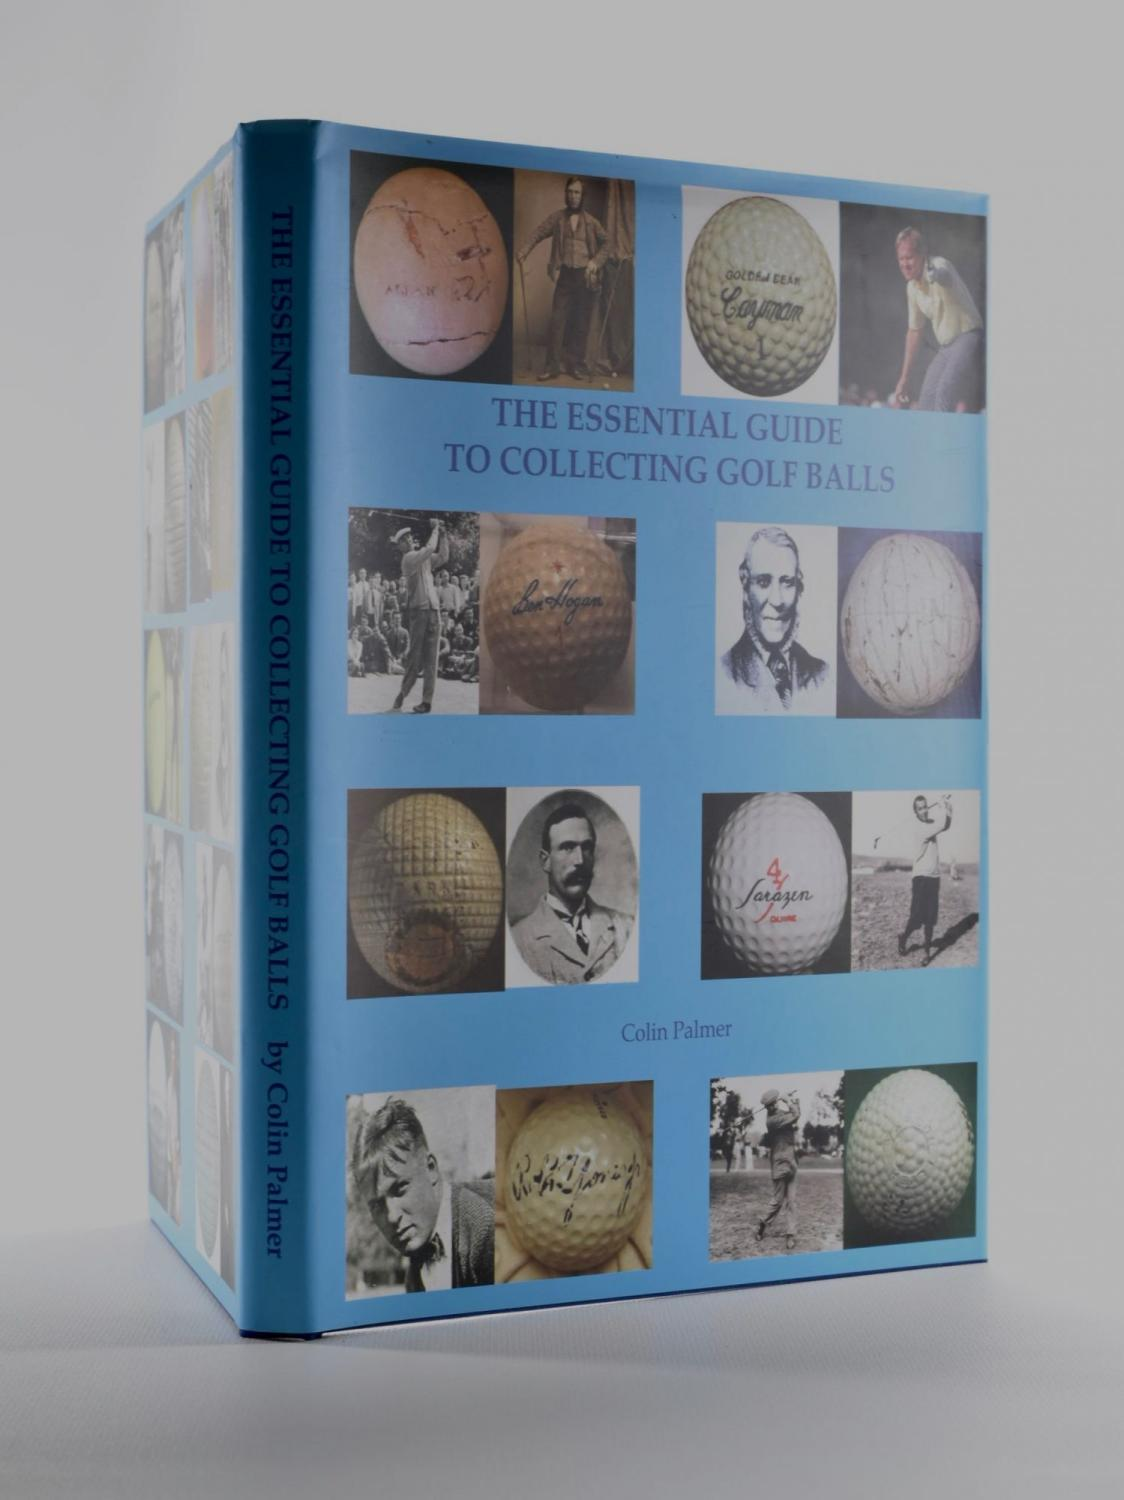 The Essential Guide to Collecting Golf Balls Colin Palmer